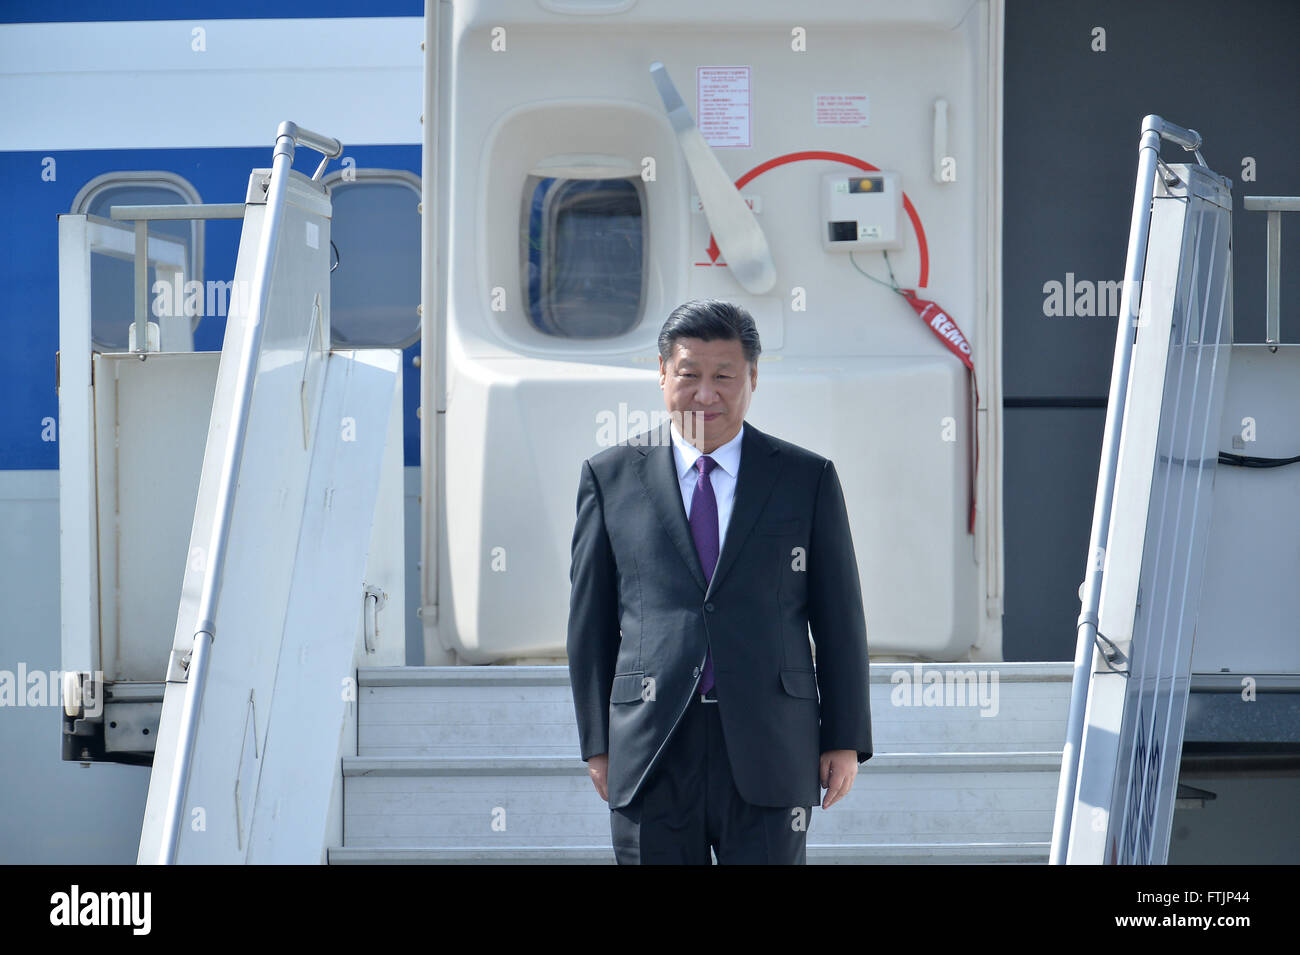 Prague, Czech Republic. 28th Mar, 2016. China's President Xi Jinping arrives for a three-day official visit - Stock Image